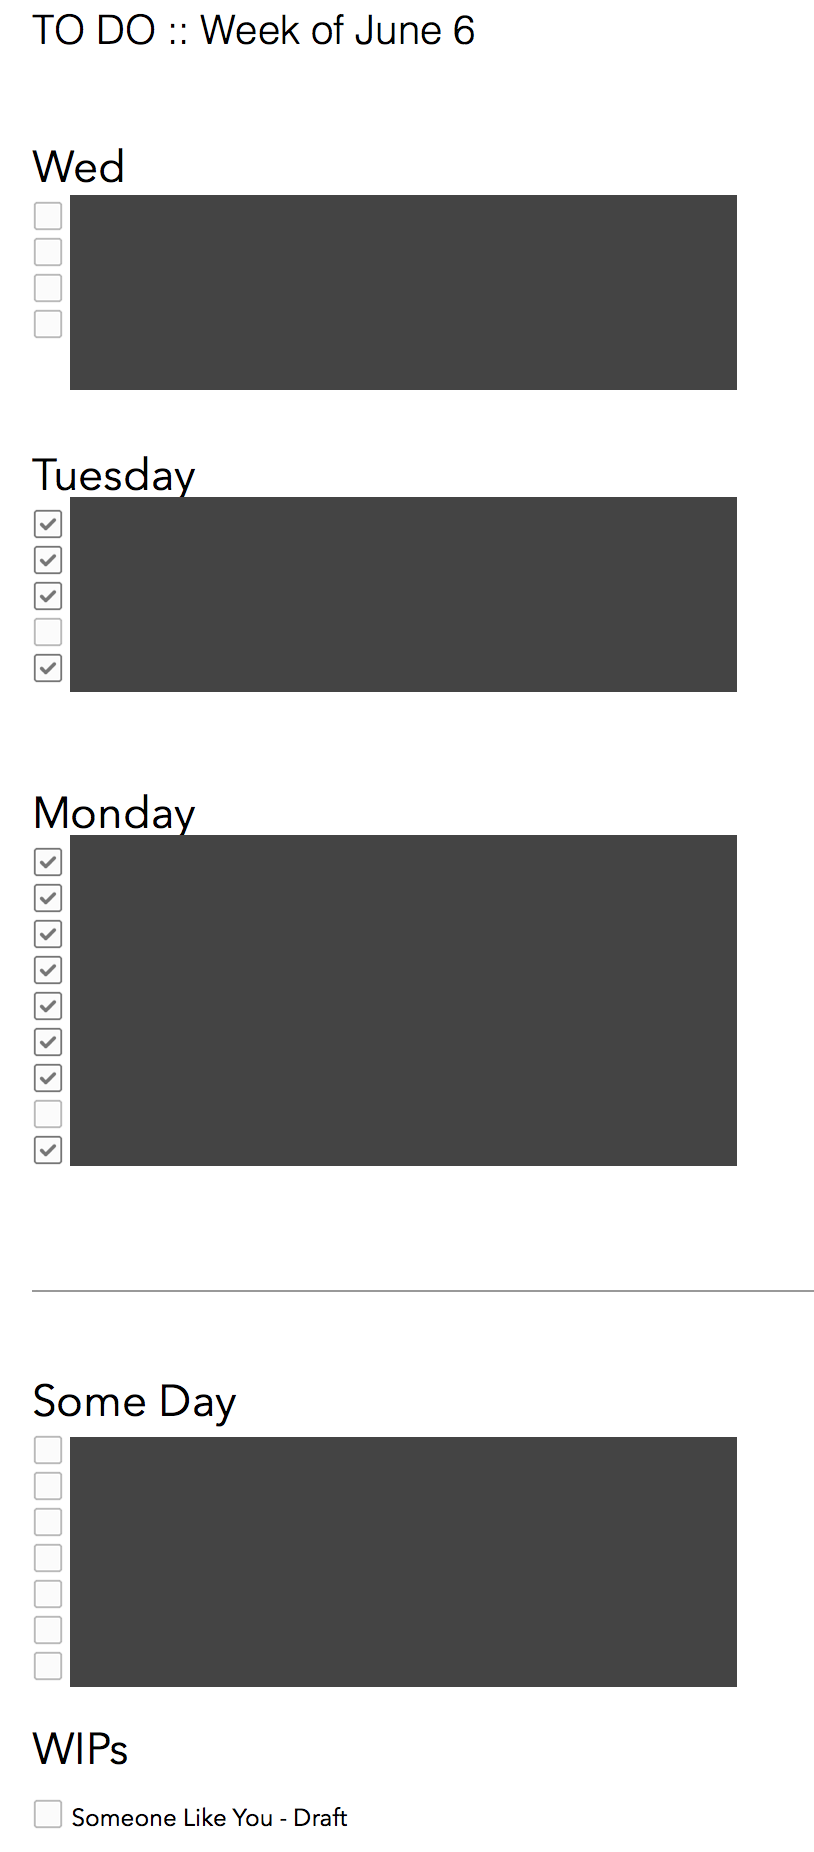 My to-do list in action. This is my ACTUAL note for this week (screenshot was pulled Wed morning). With each new day, I simply hit enter, and put the current day up at the top.